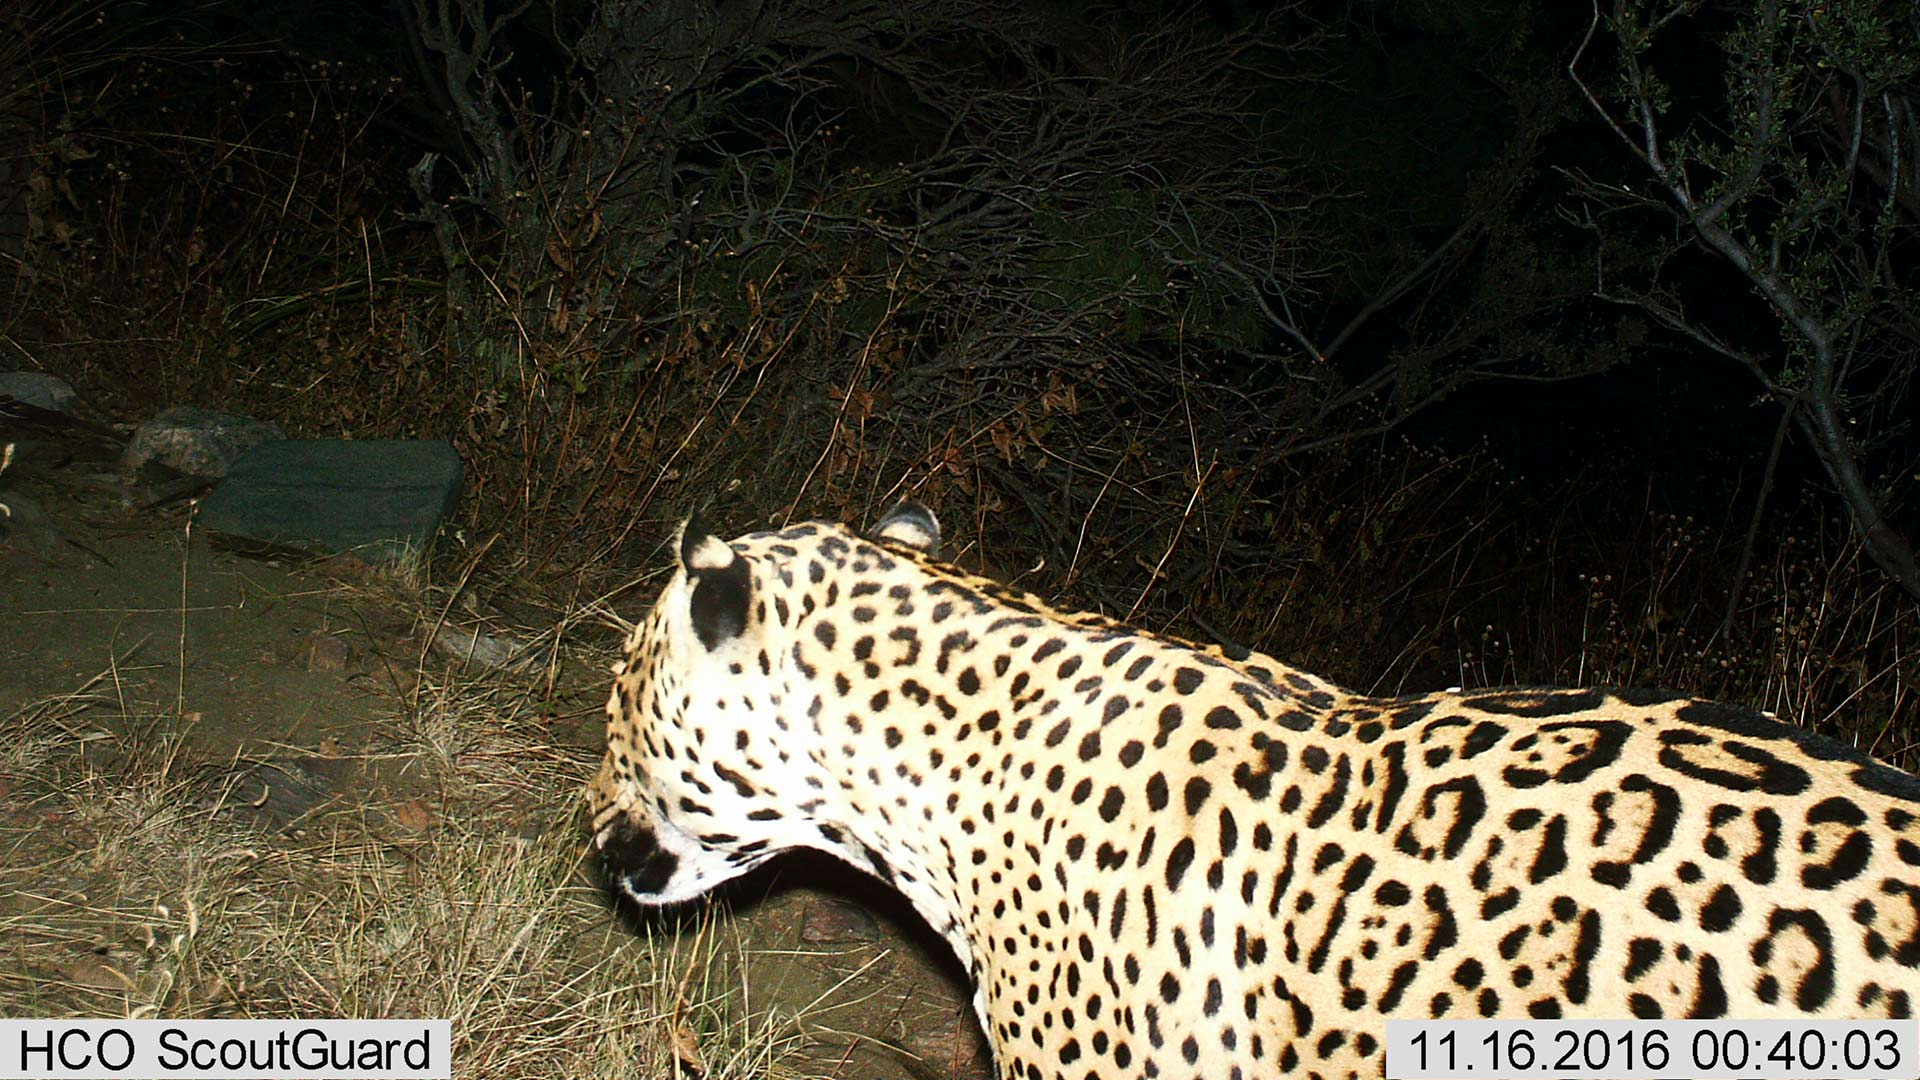 Male jaguar photographed in the Dos Cabezas Mountains Nov, 16, 2016.